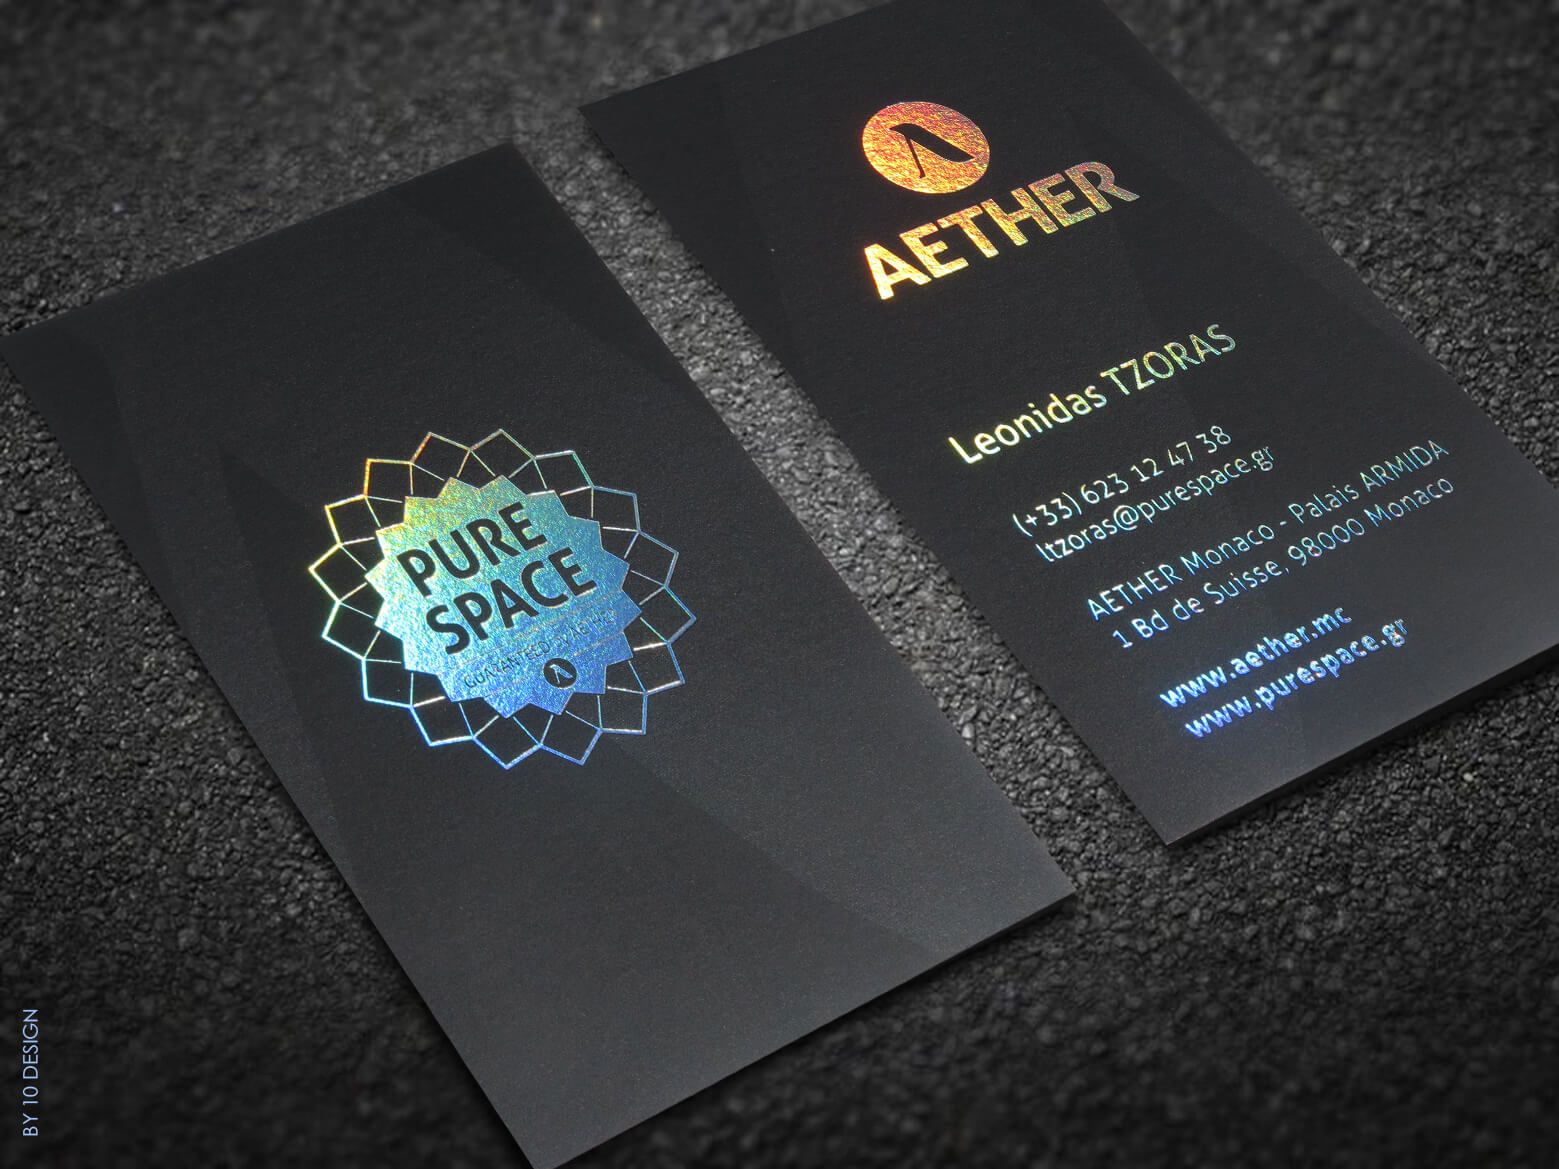 AETHER-CARD-2